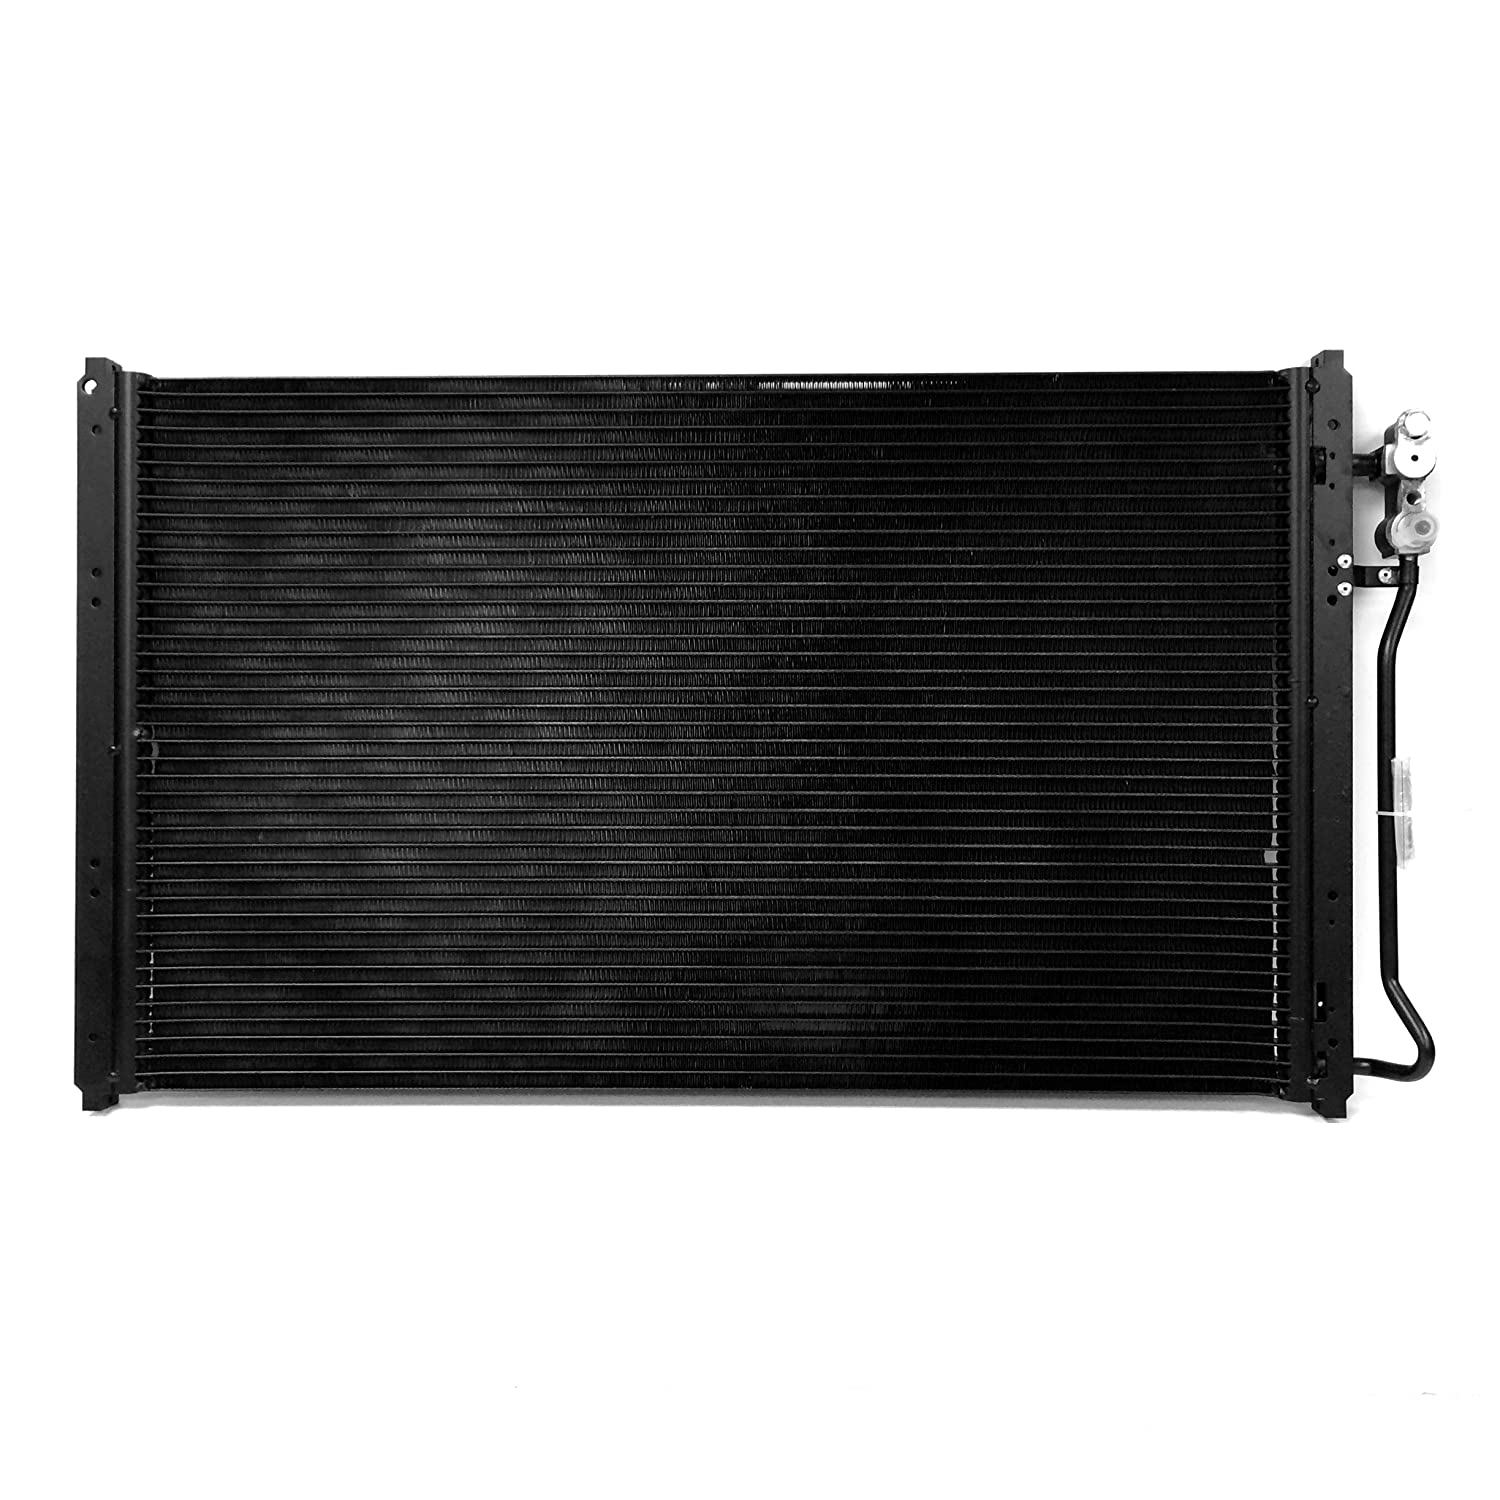 COF127 4882 AC A//C Condenser for Ford Fits Mustang 1999 2000 2001 2002 2003 2004